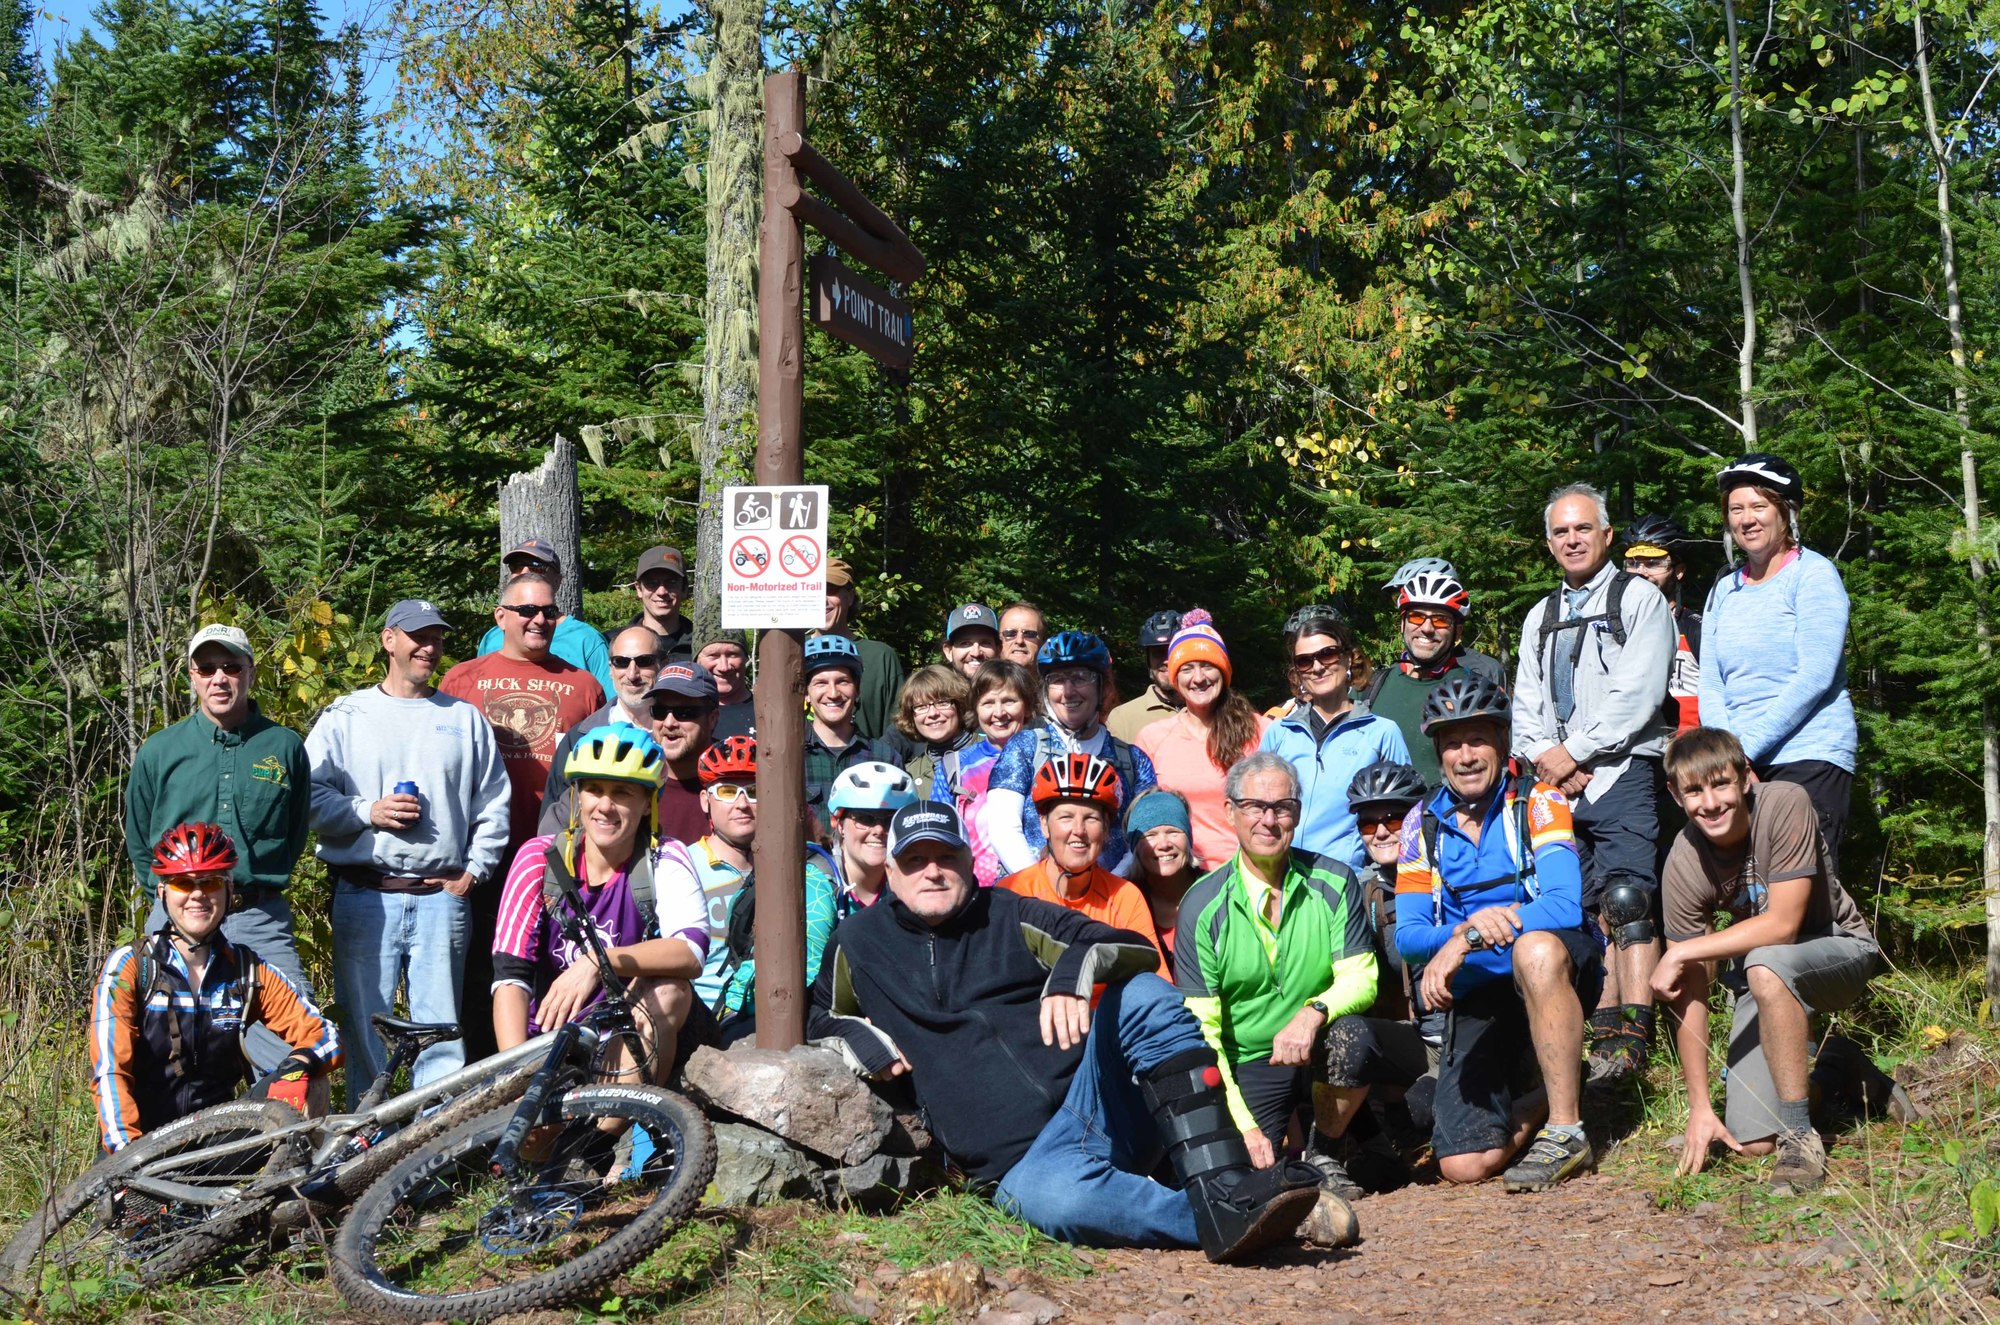 A group of mountain bikers and others gathered Thursday at High Rock Bay to celebrate the opening of a new section of the Keweenaw Point Trail.